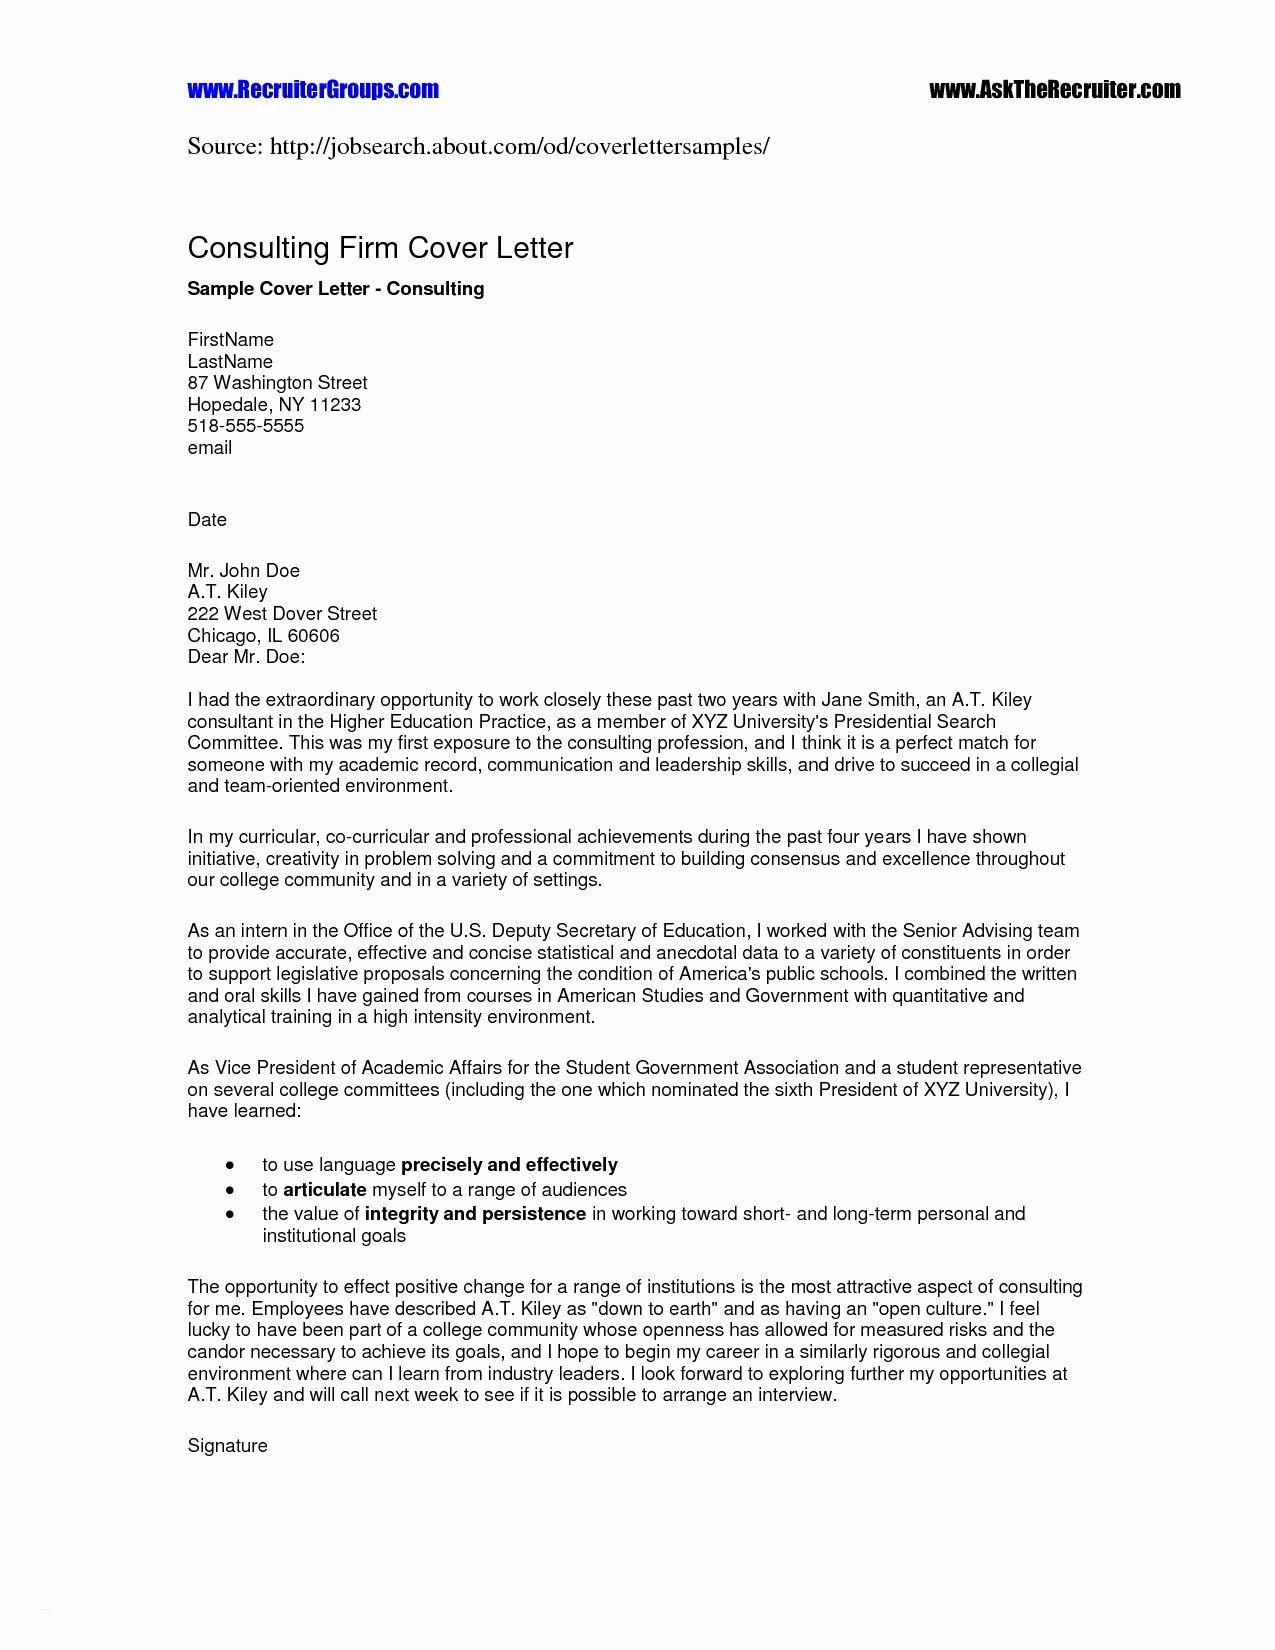 609 Letter Template - New 609 Letter Template